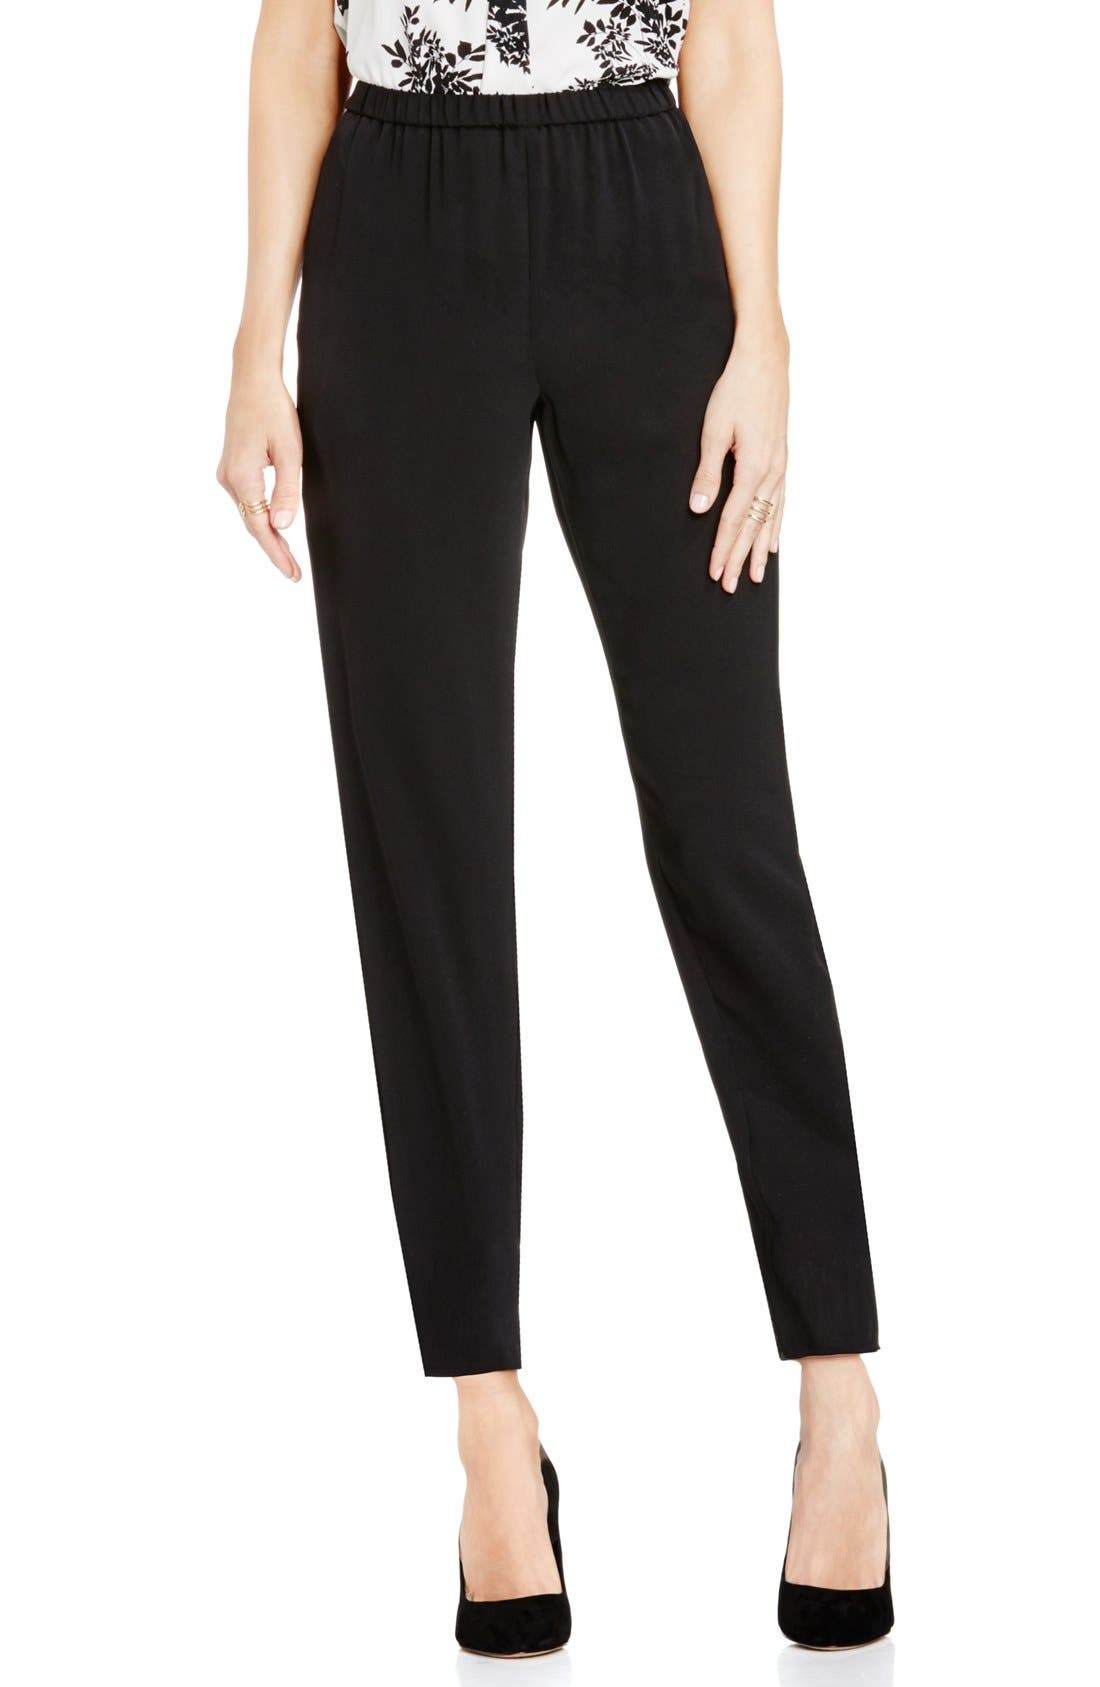 Main Image - Vince Camuto Slim Leg Ankle Pants (Regular & Petite)